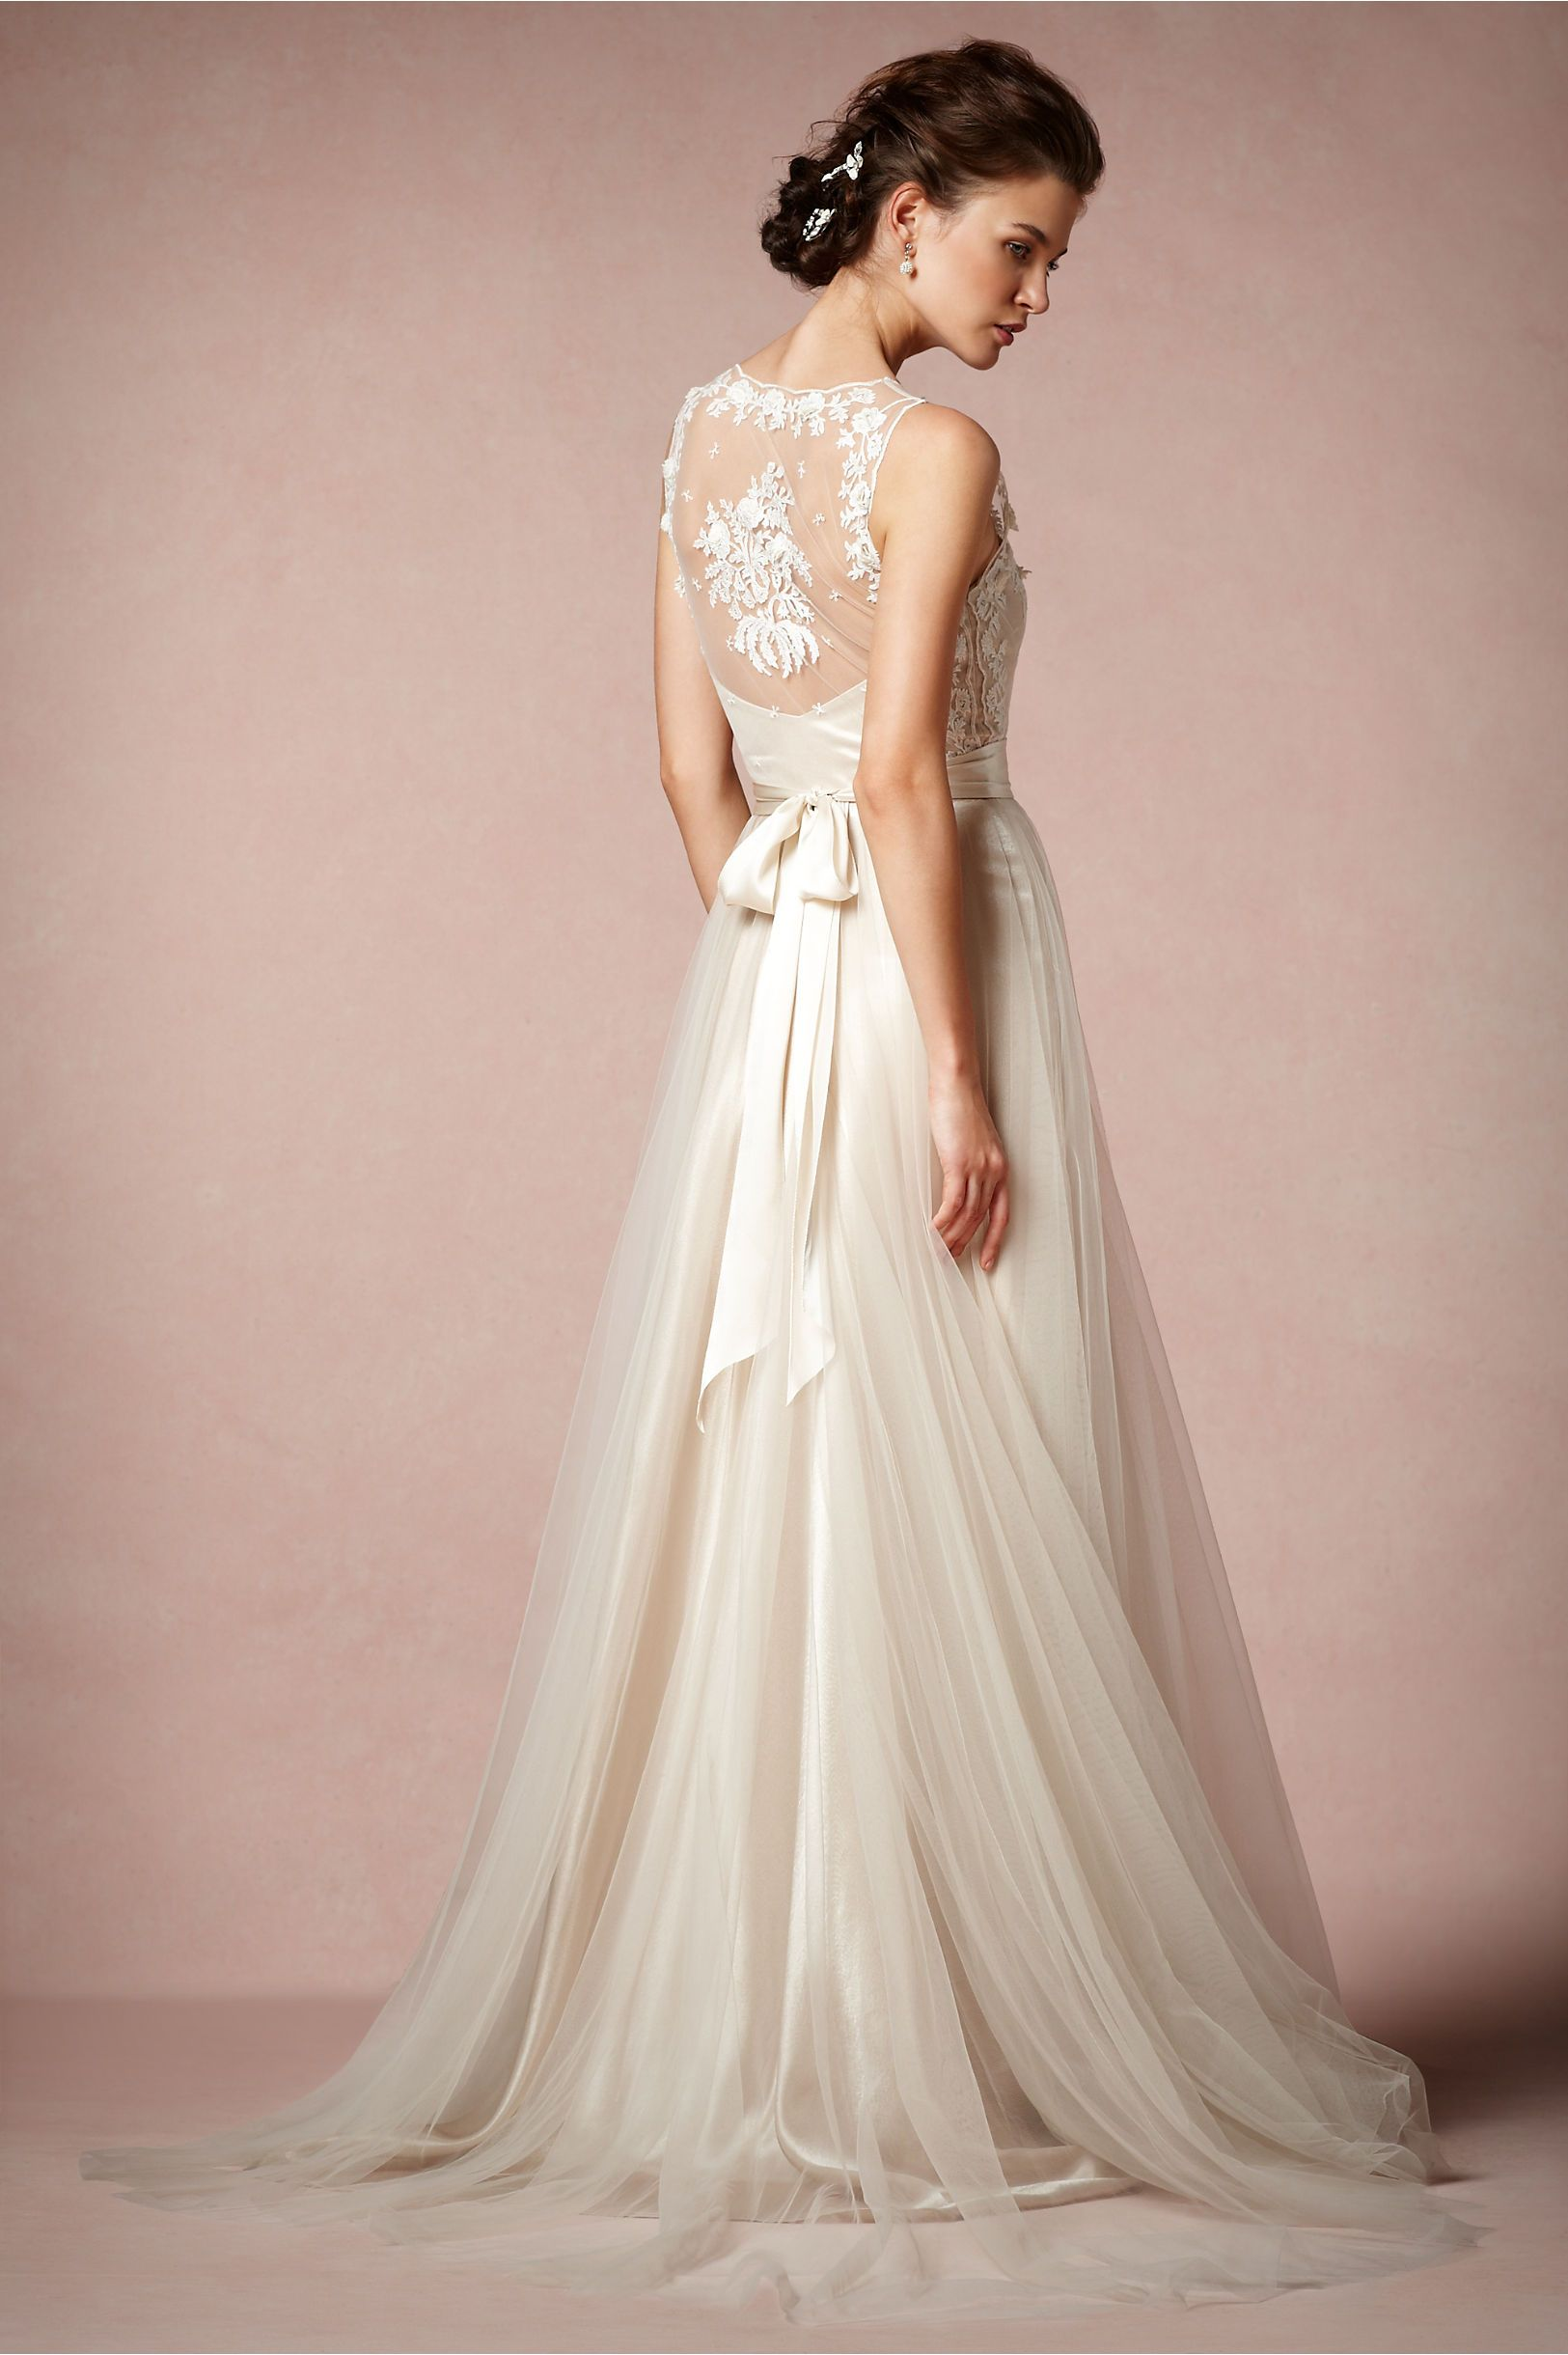 The most beautiful, floral-lace wedding gown ever! #FlowerShop Onyx ...